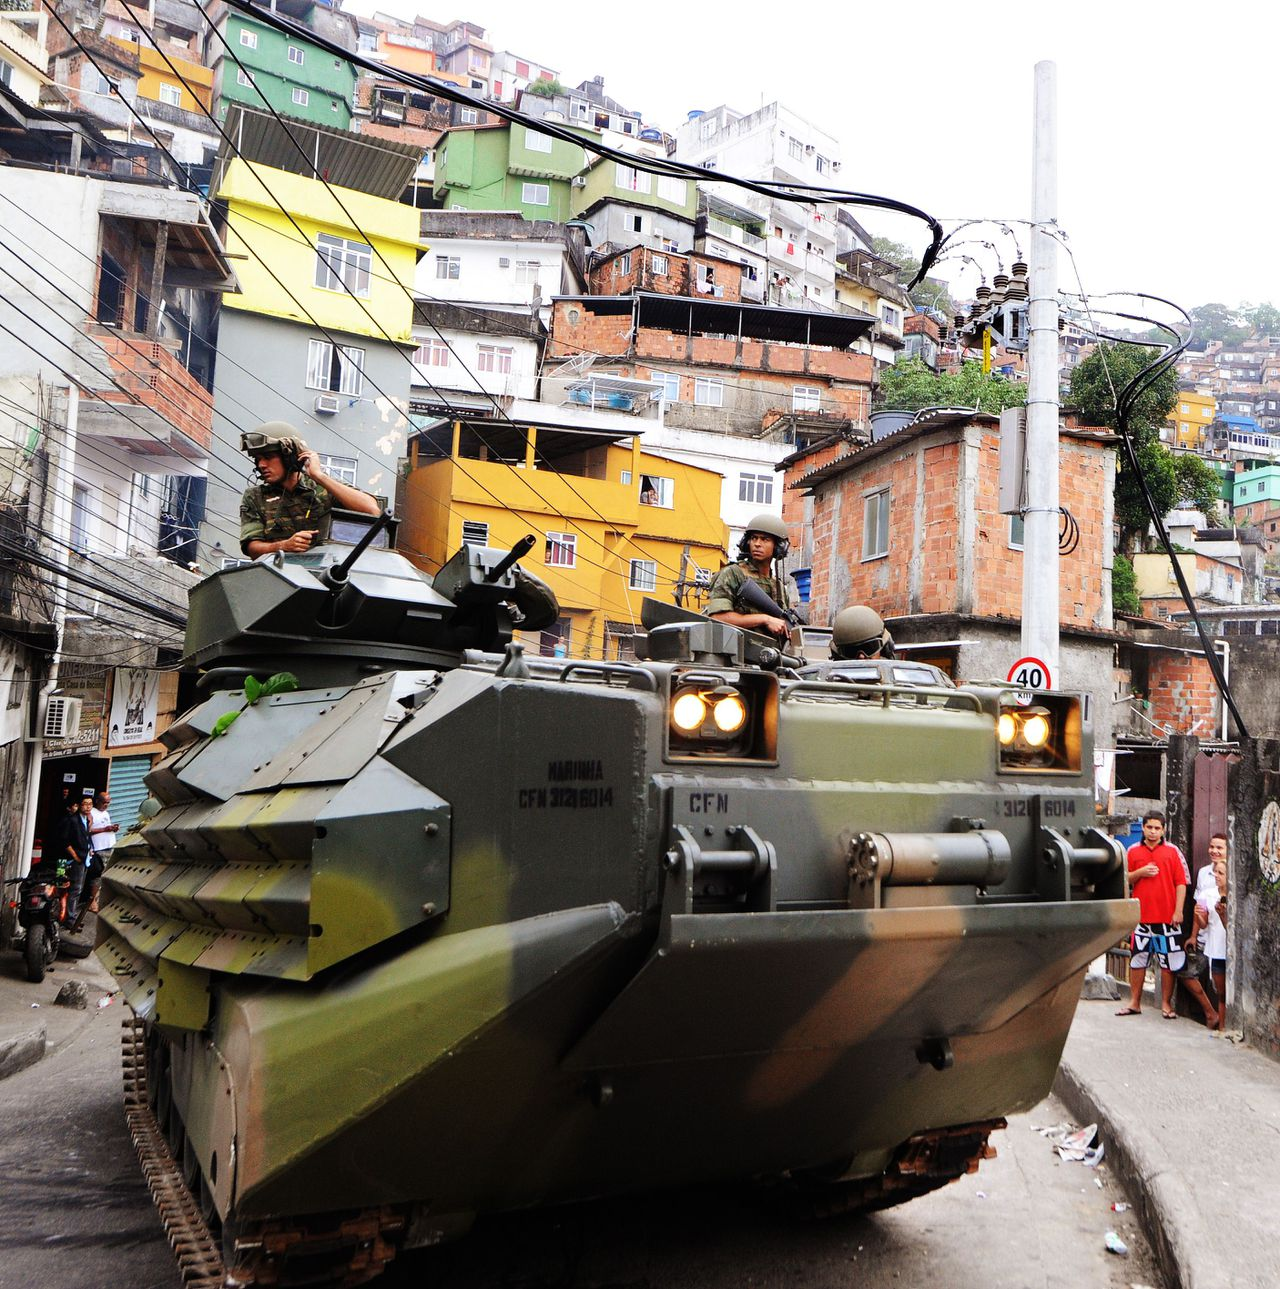 Brazilian marines on an amphibious assault vehicle (AAV) drive along a street of the Rocinha shantytown in Rio de Janeiro, Brazil, on November 13, 2011. Security forces backed by armor and helicopters peacefully seized control of Rio's largest favela early Sunday in a major assault to expel narcotraffickers who had been ruling the area for 30 years. AFP PHOTO ANTONIO SCORZA